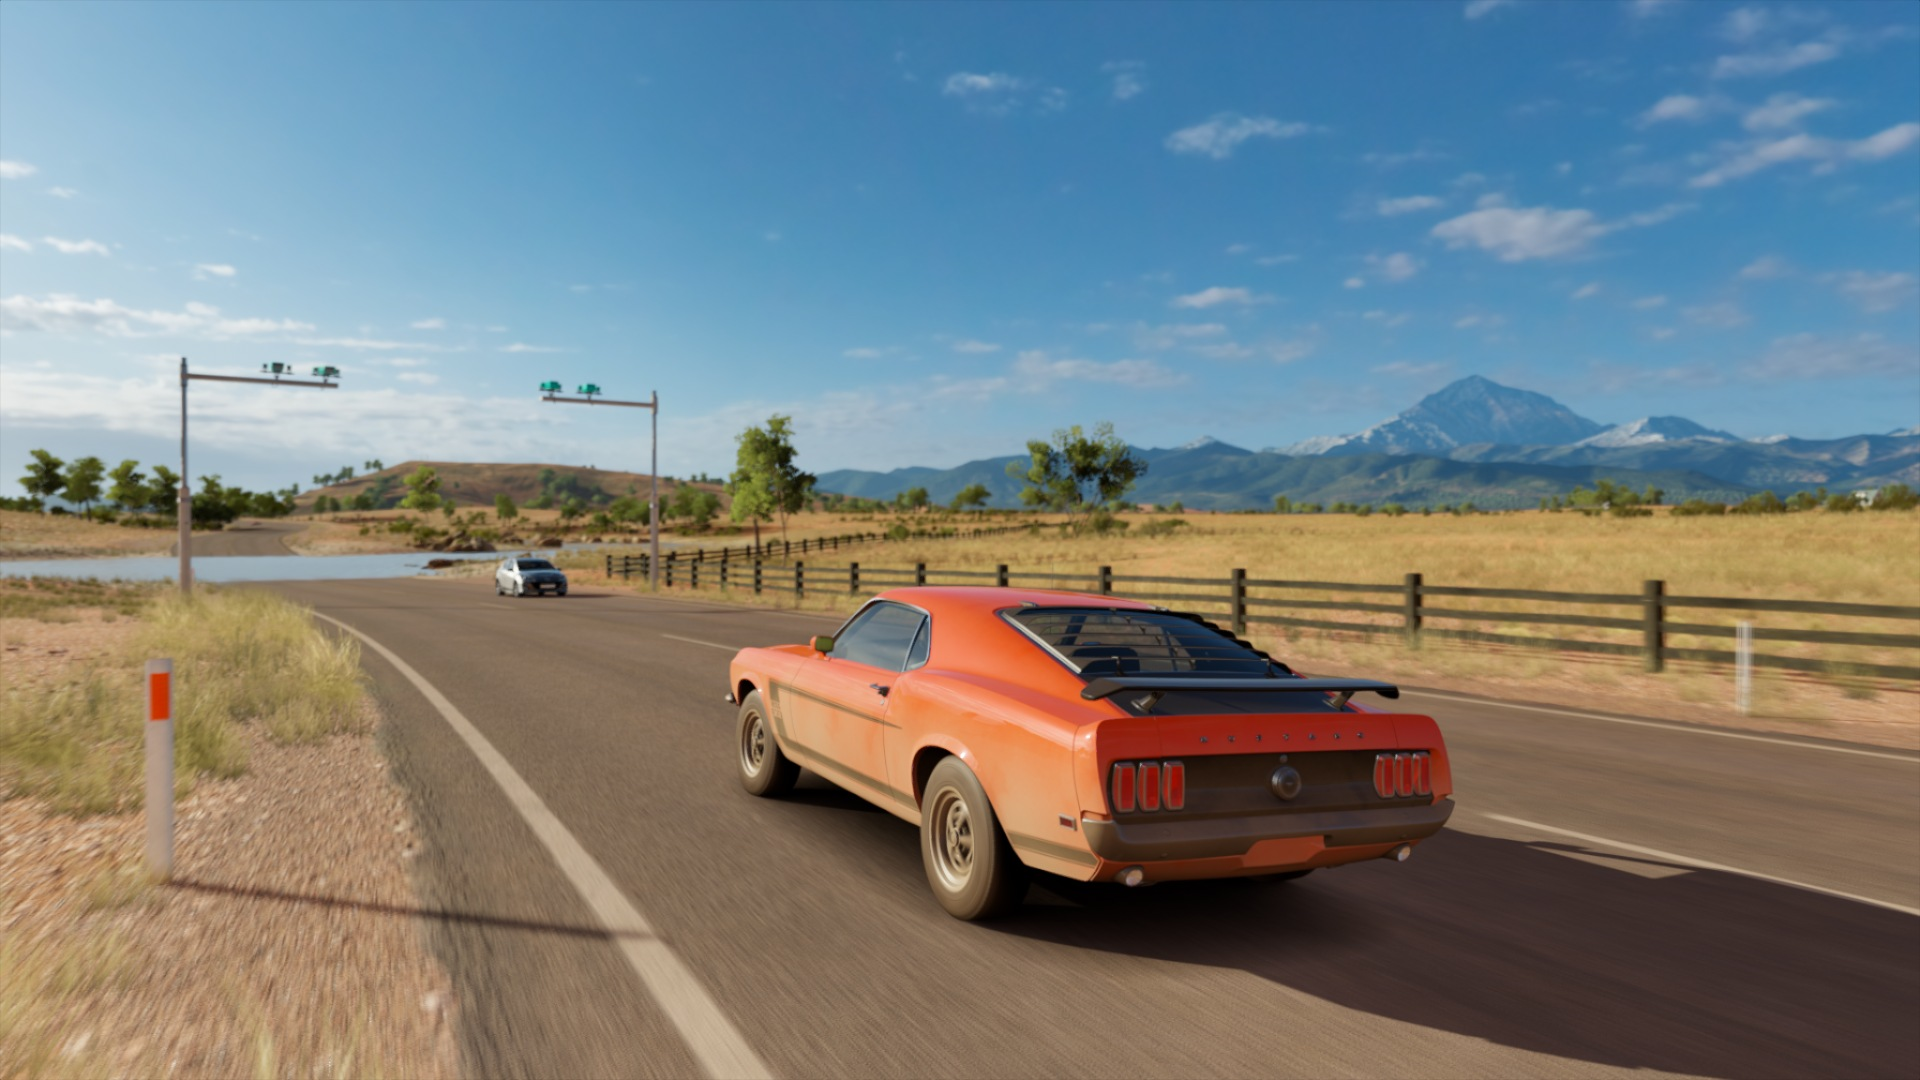 forza horizon 3 recenzia pc verzie. Black Bedroom Furniture Sets. Home Design Ideas